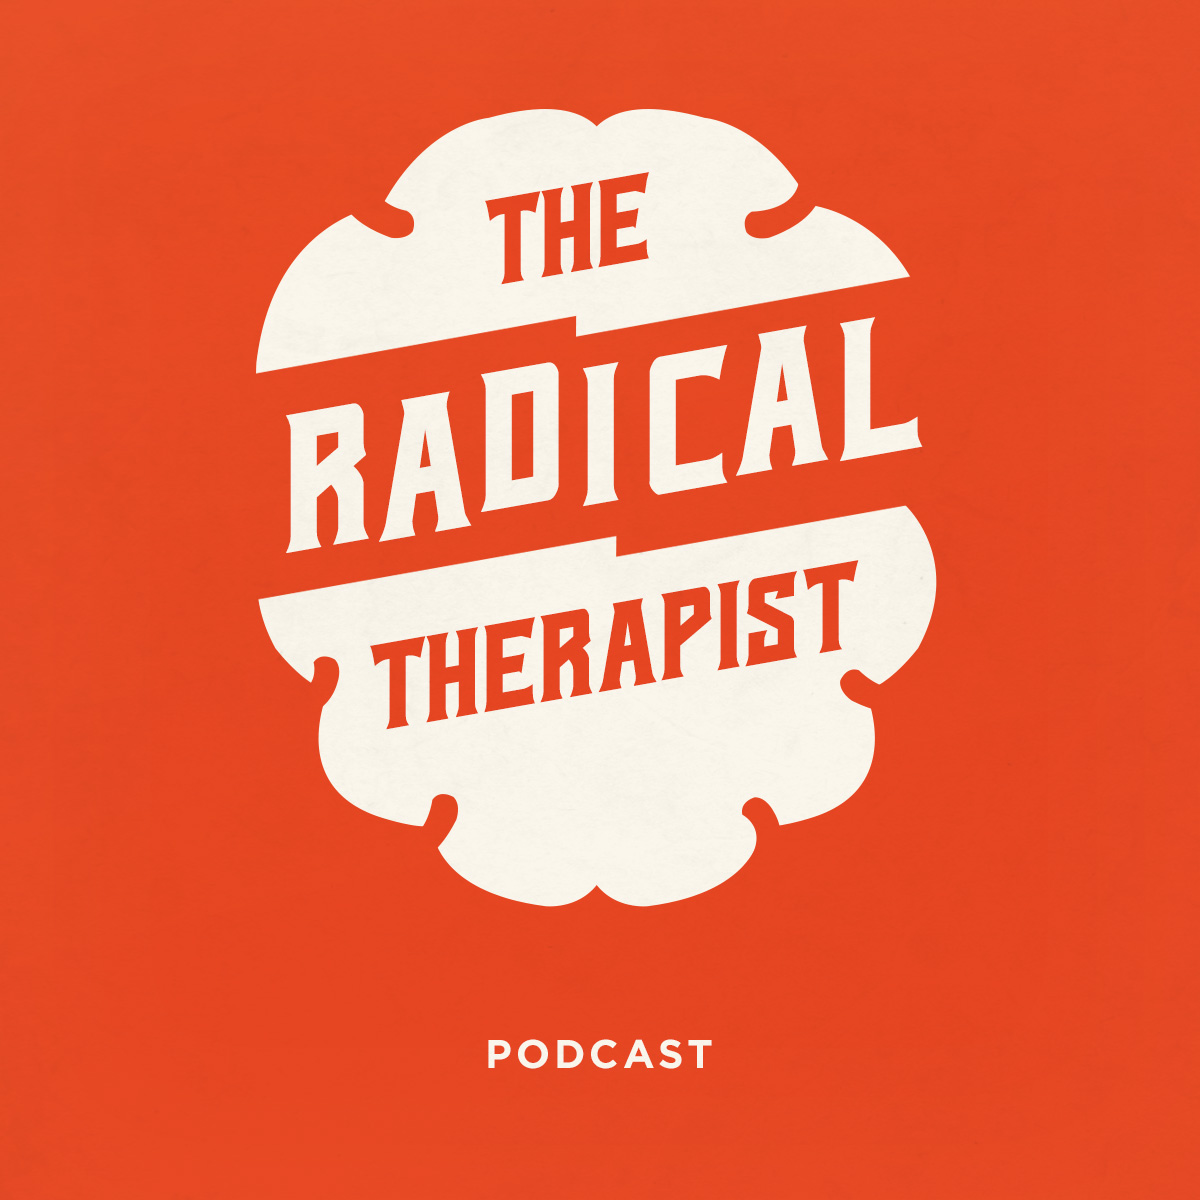 The Radical Therapist #042 - Living Into the Story: Narrative Identity & Agency w/ Dr. Jonathan Adler